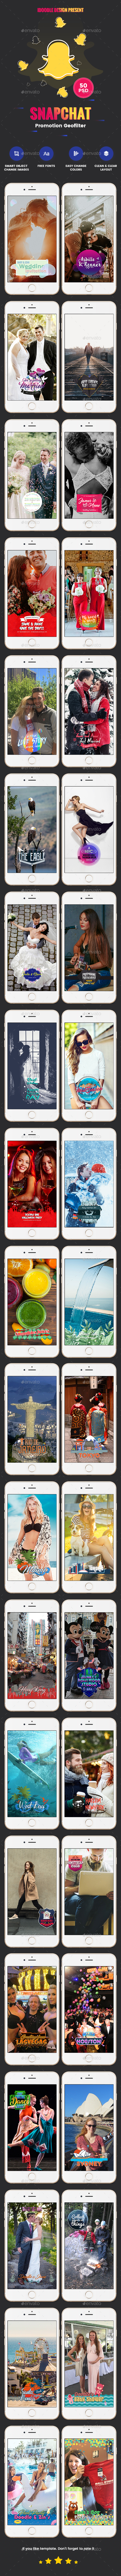 Bundle Promotion Geofilters Snapchat - 50 PSD - Miscellaneous Social Media